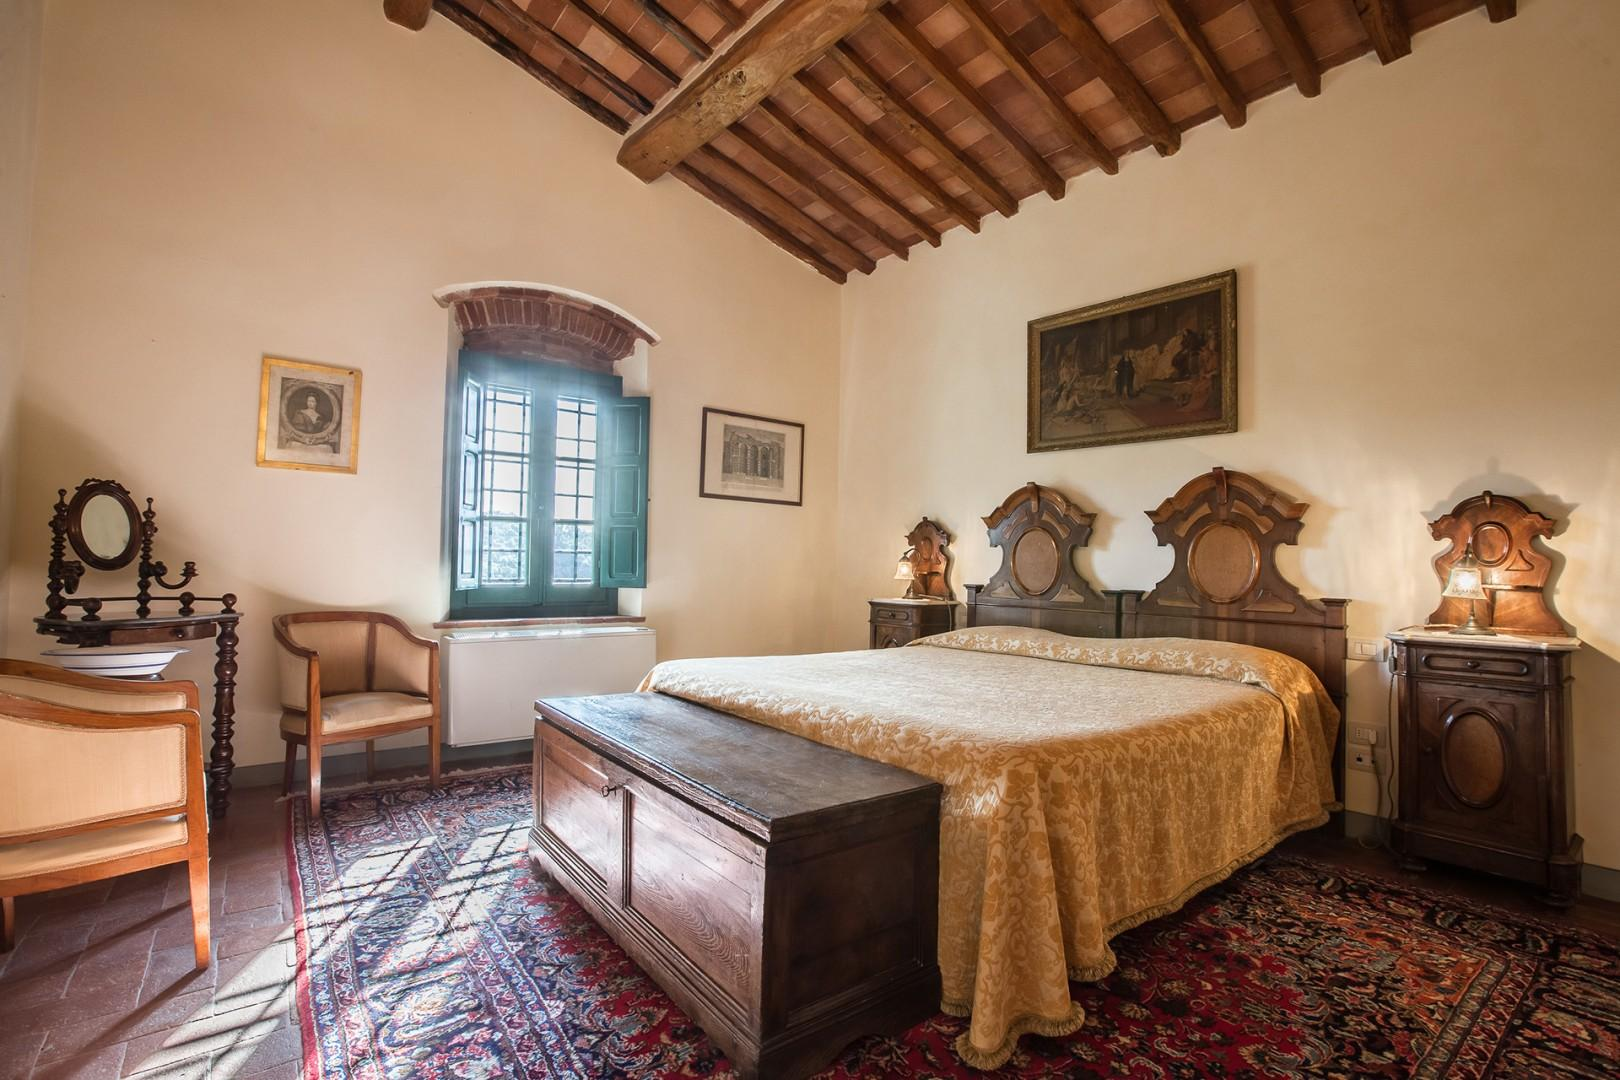 Bedroom 1 features a comfortable bed with intriguing Louis Philippe Tuscan headboards.